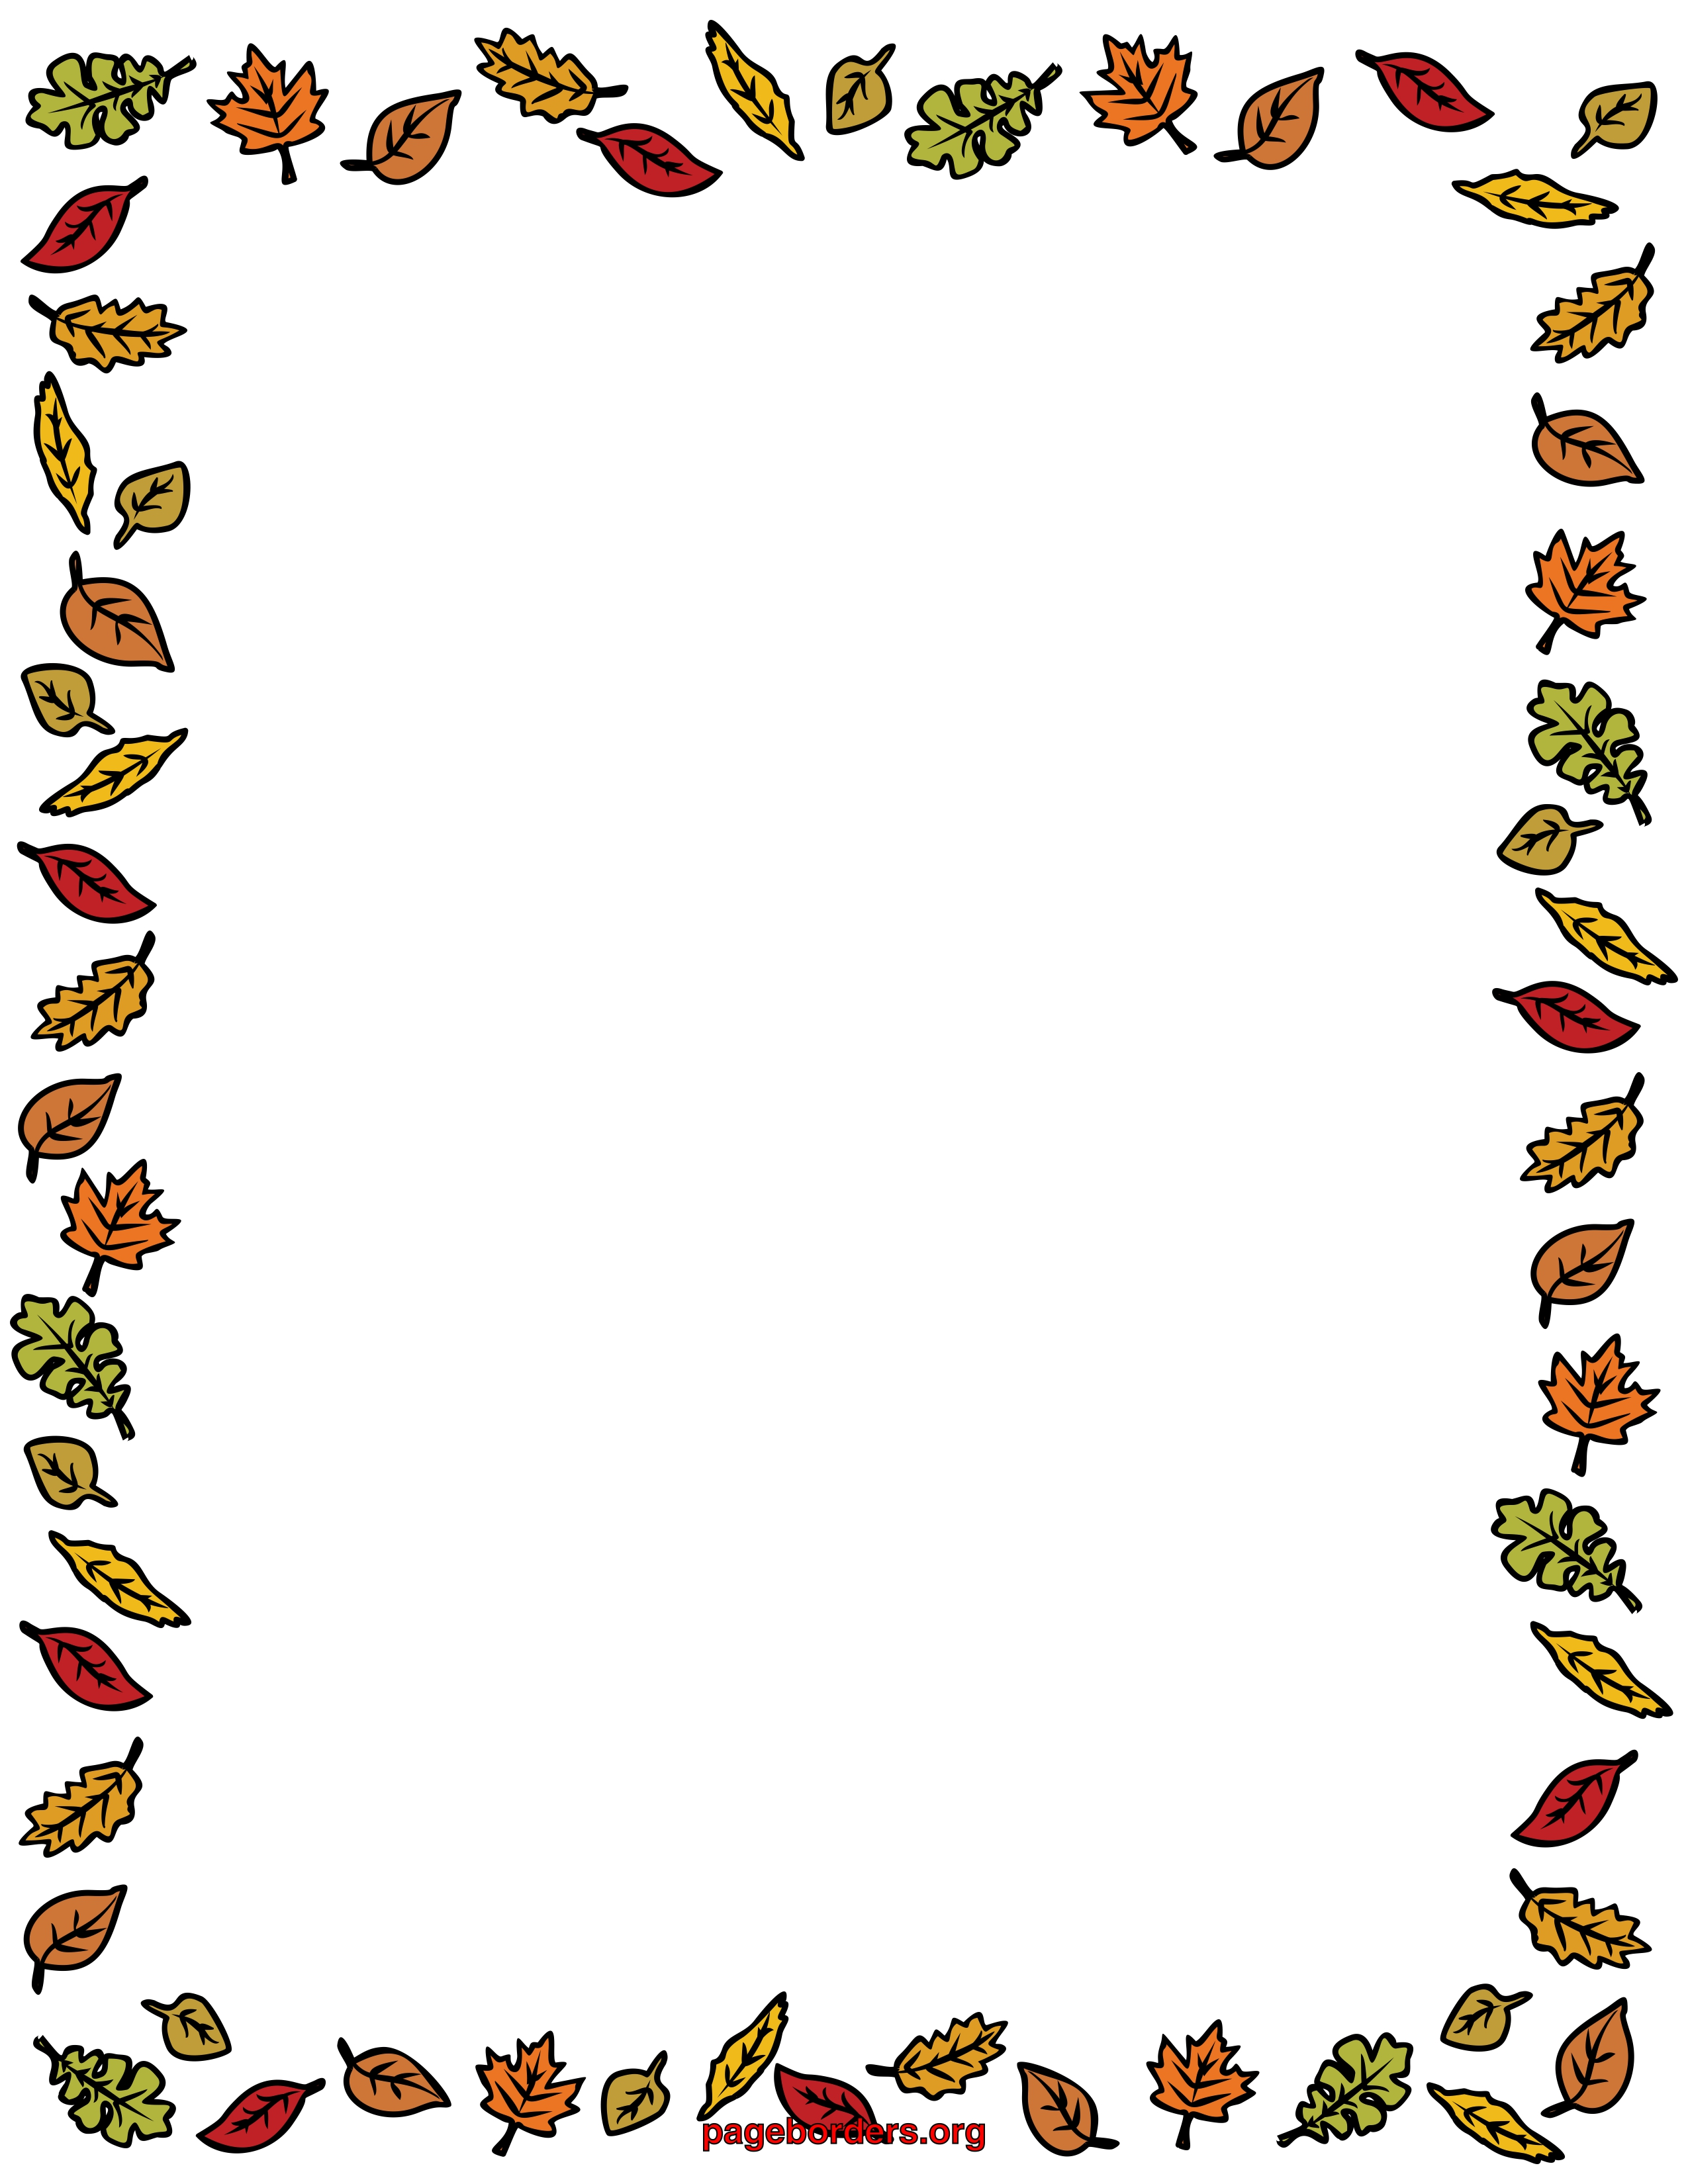 Free Coloring Pages Of Autumn Border-Free Coloring Pages Of Autumn Border-17